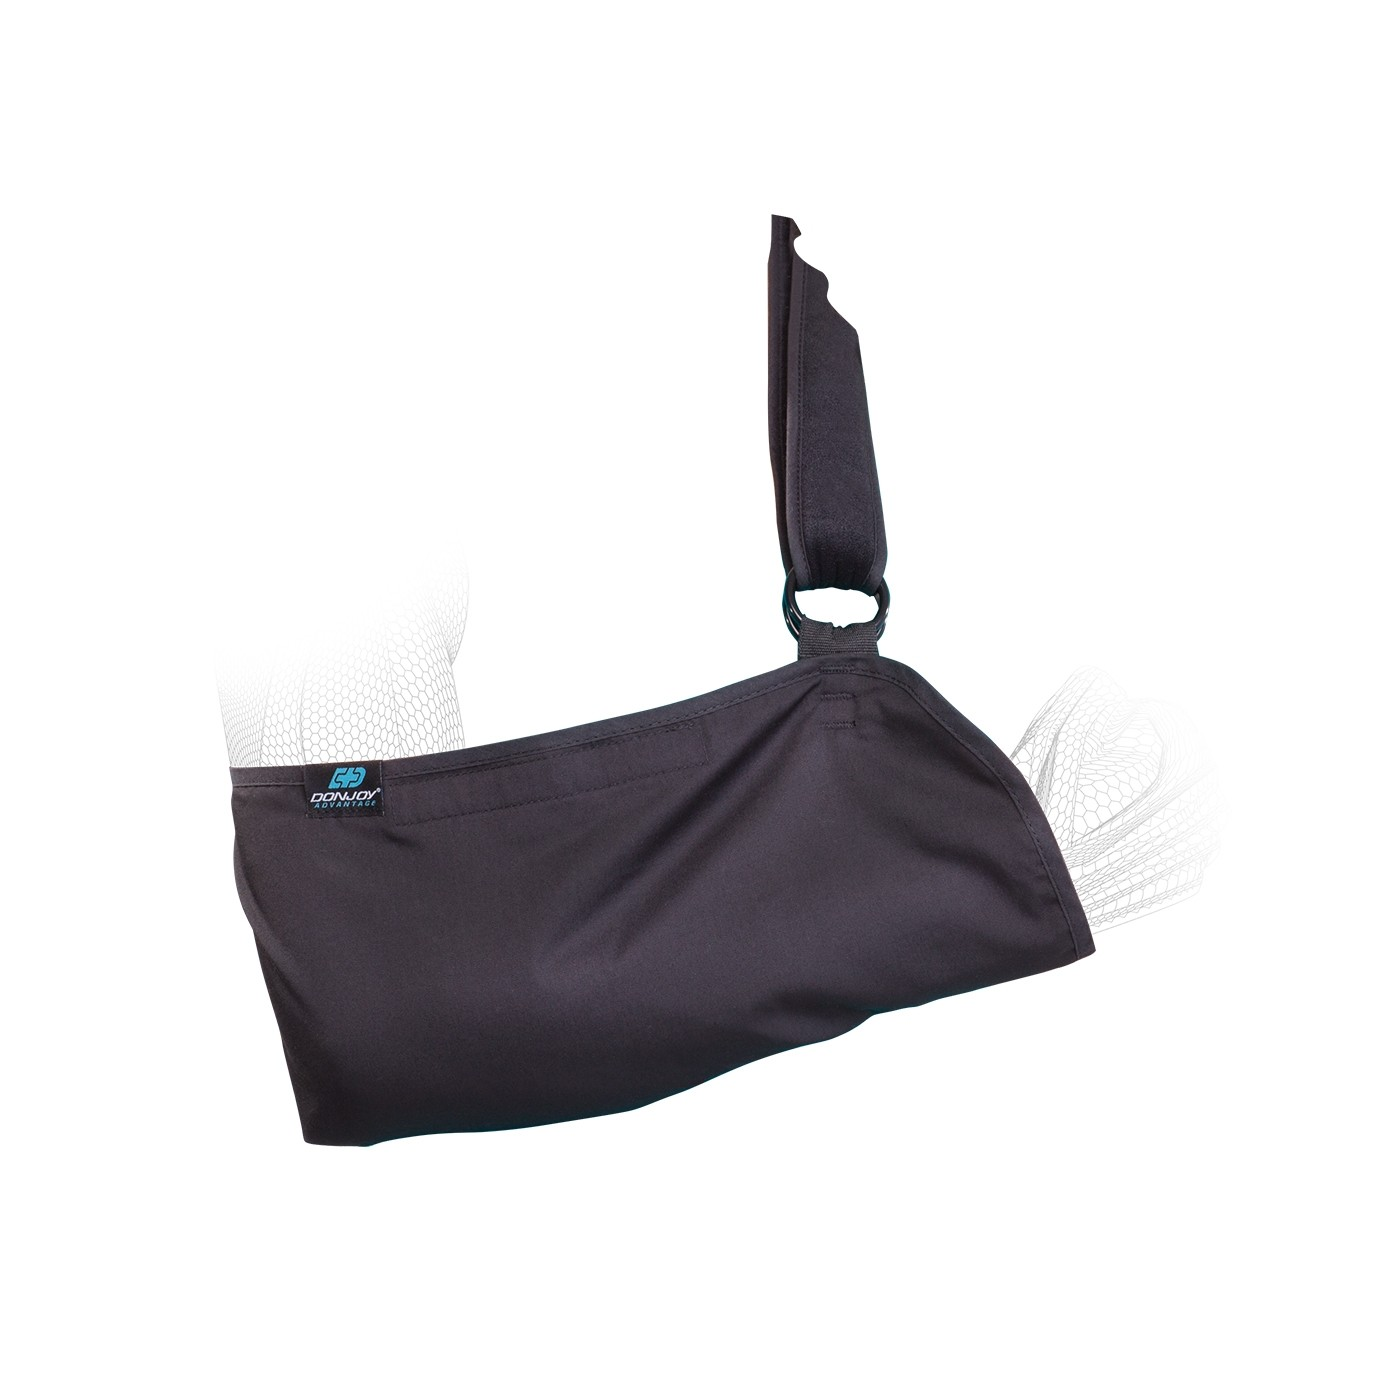 DonJoy Advantage Comfort Shoulder Arm Sling